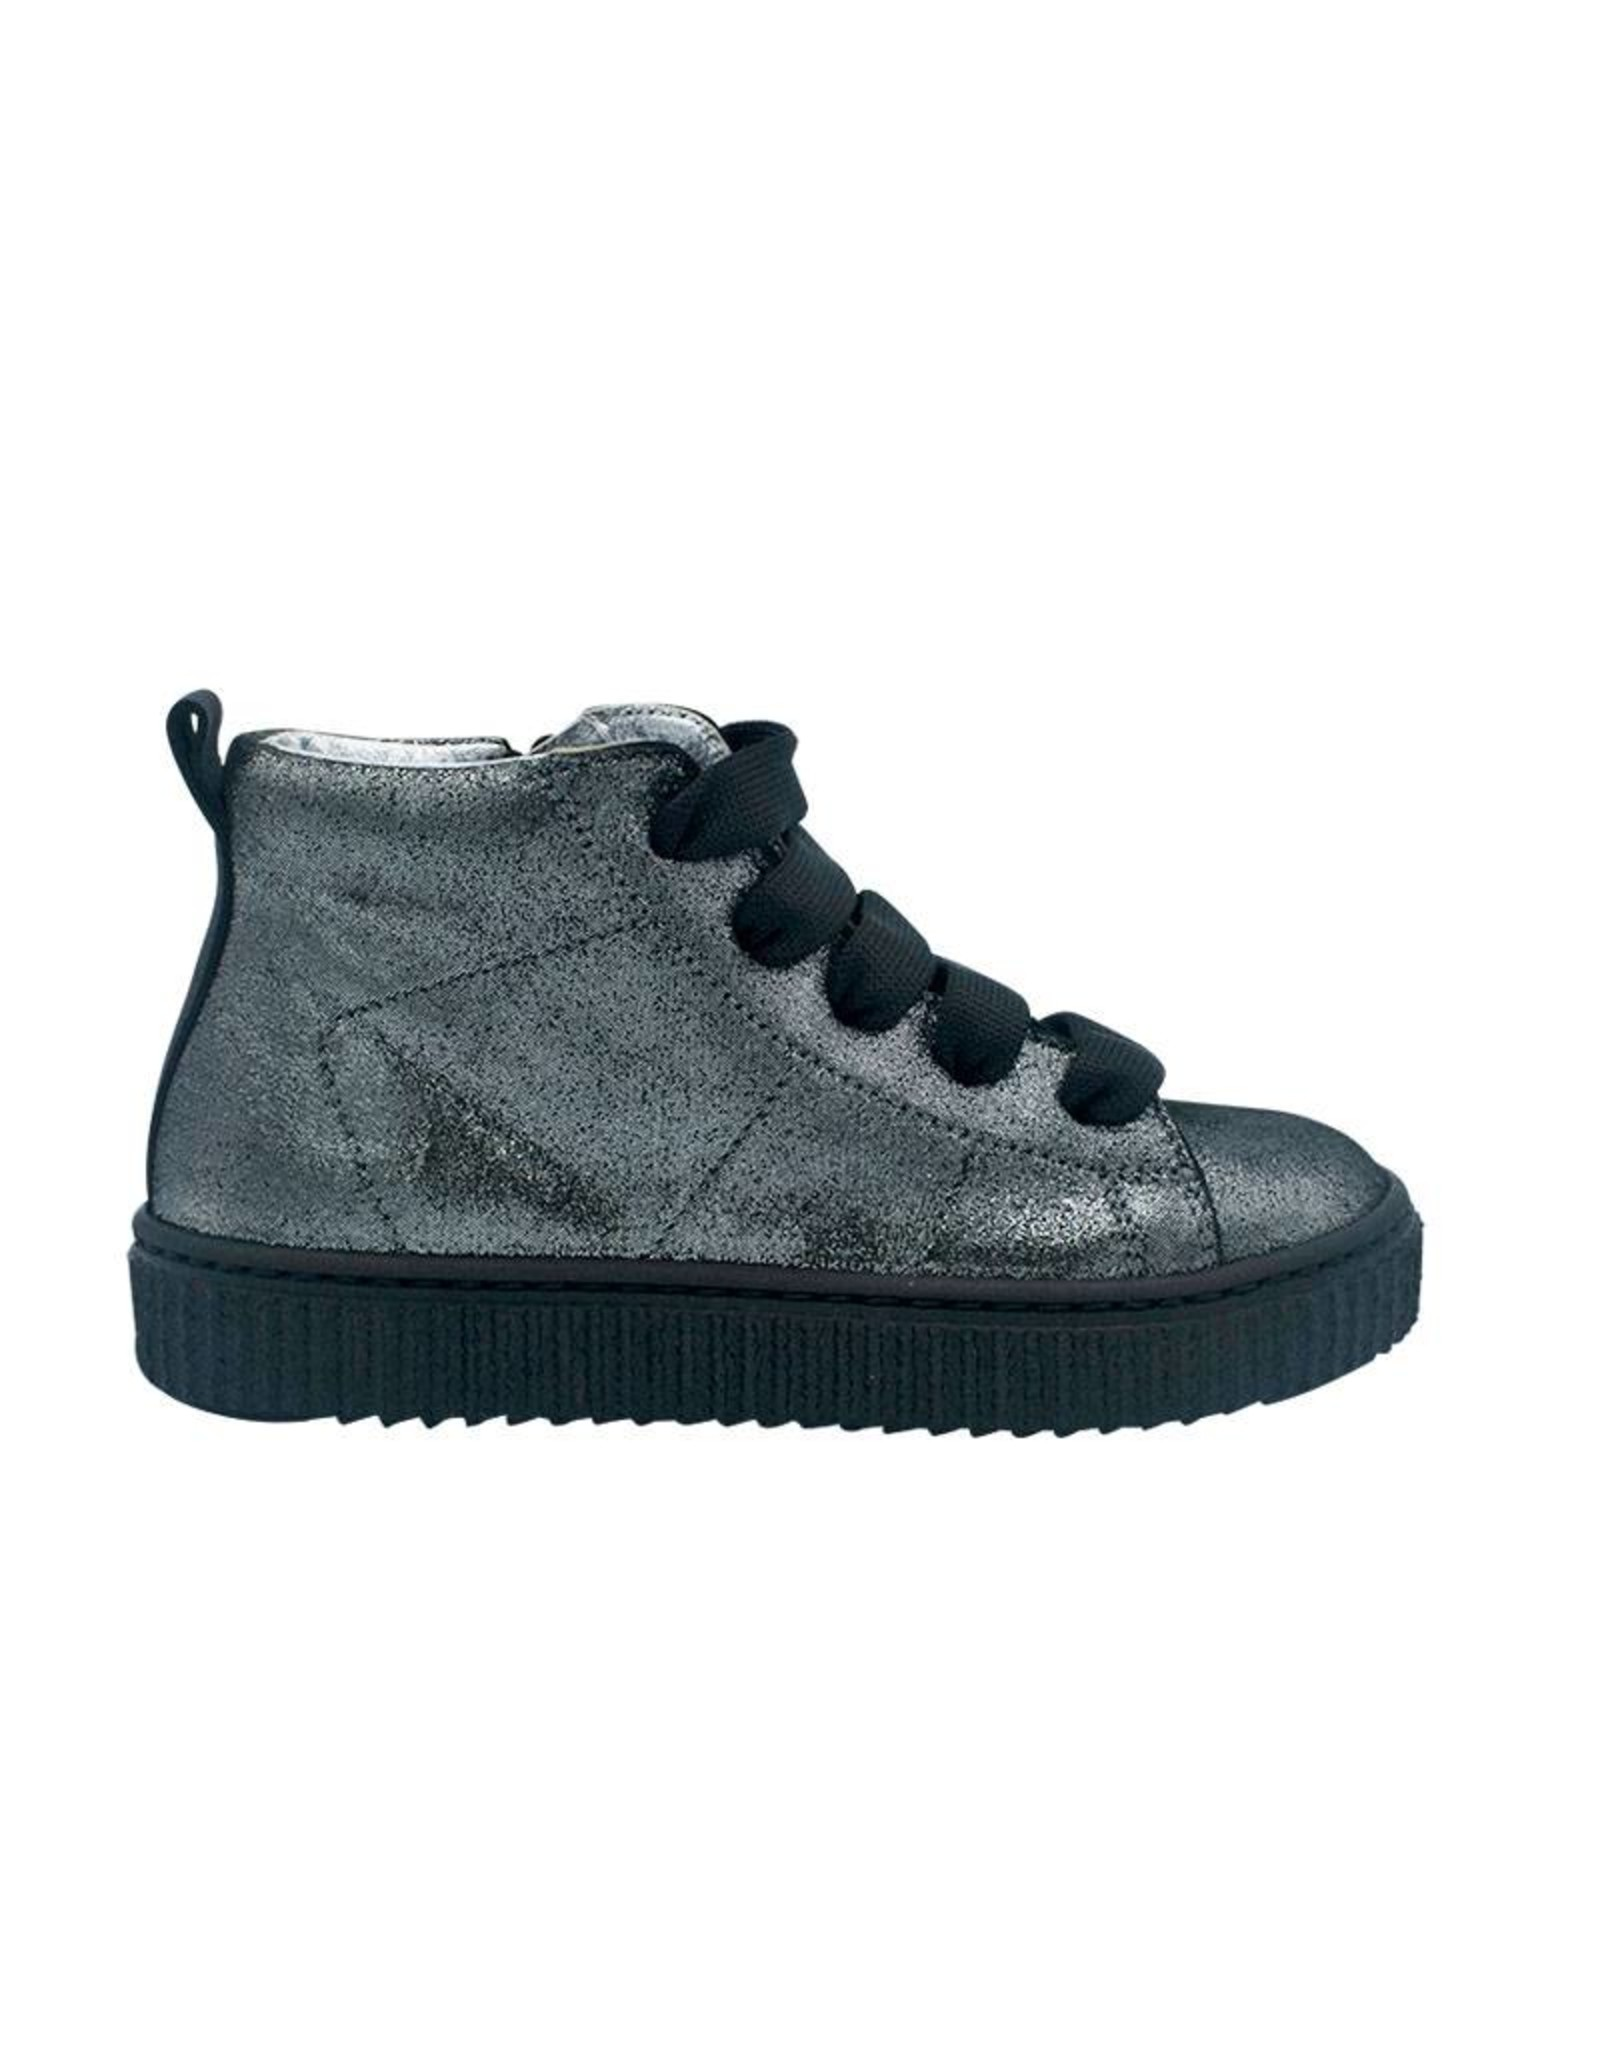 RONDINELLA RONDINELLA sneaker zilver outlet